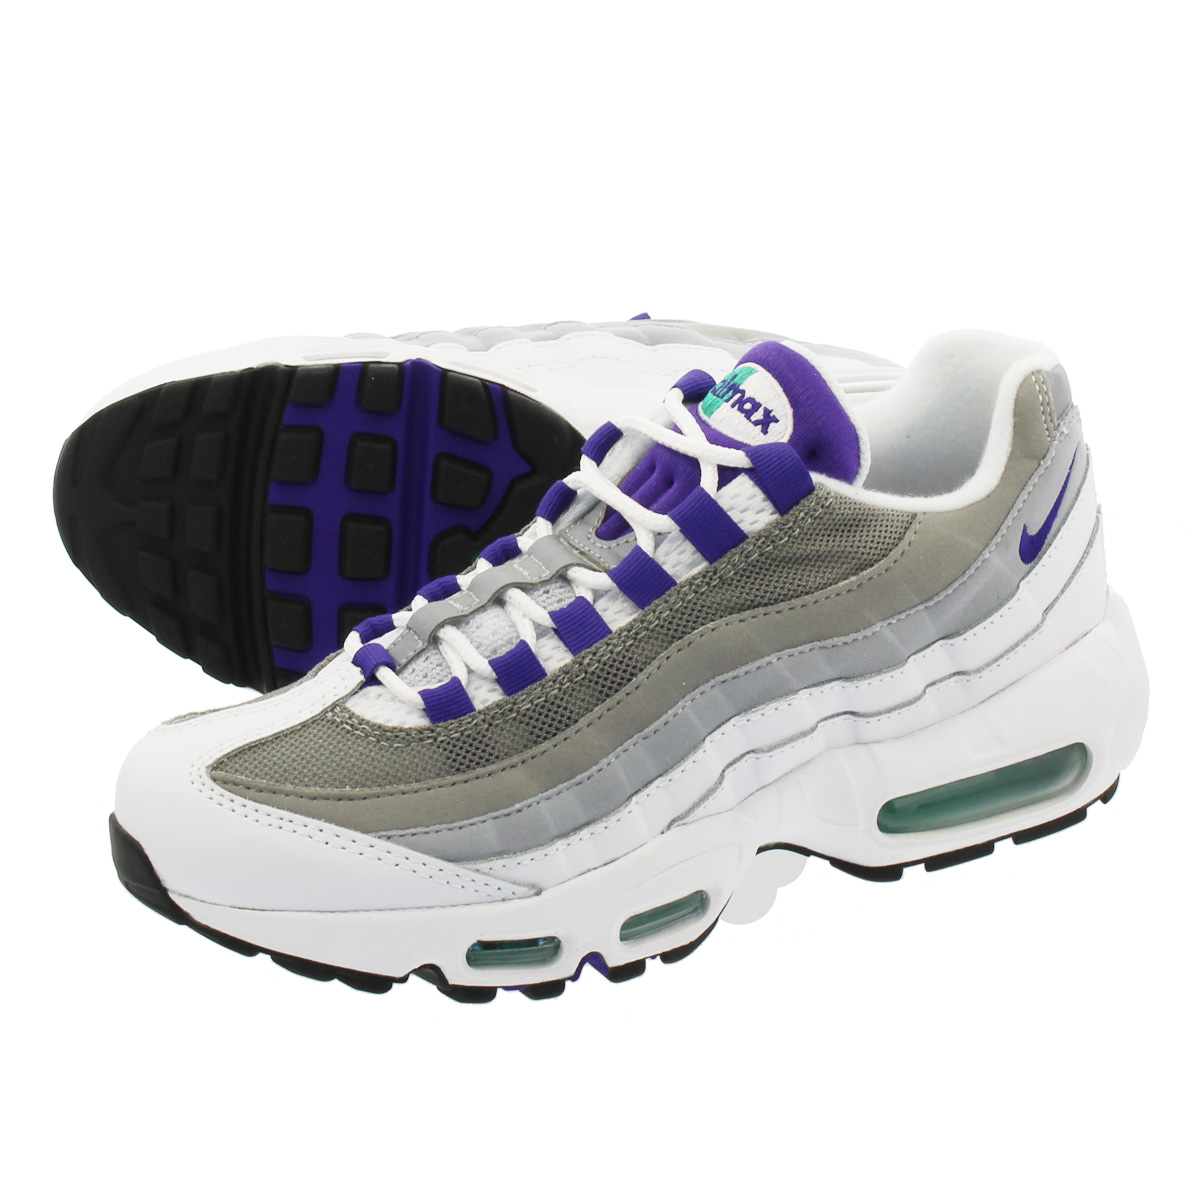 info for 27d19 88c9c NIKE WMNS AIR MAX 95 Nike women Air Max 95 WHITE COURT PURPLE EMERALD ...